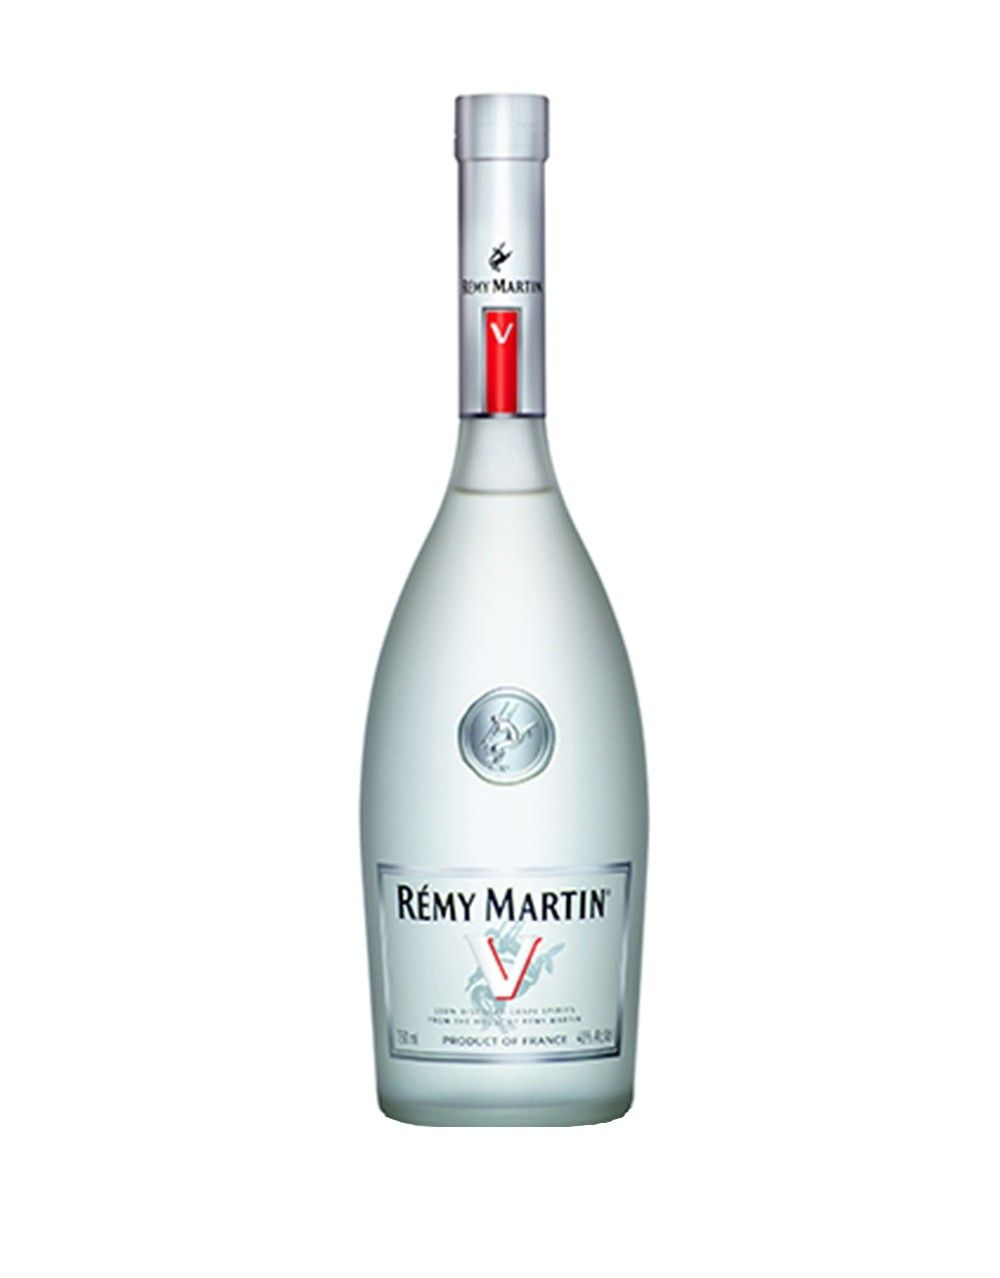 Rmy Martin V  Buy Online or Send as a Gift  ReserveBar